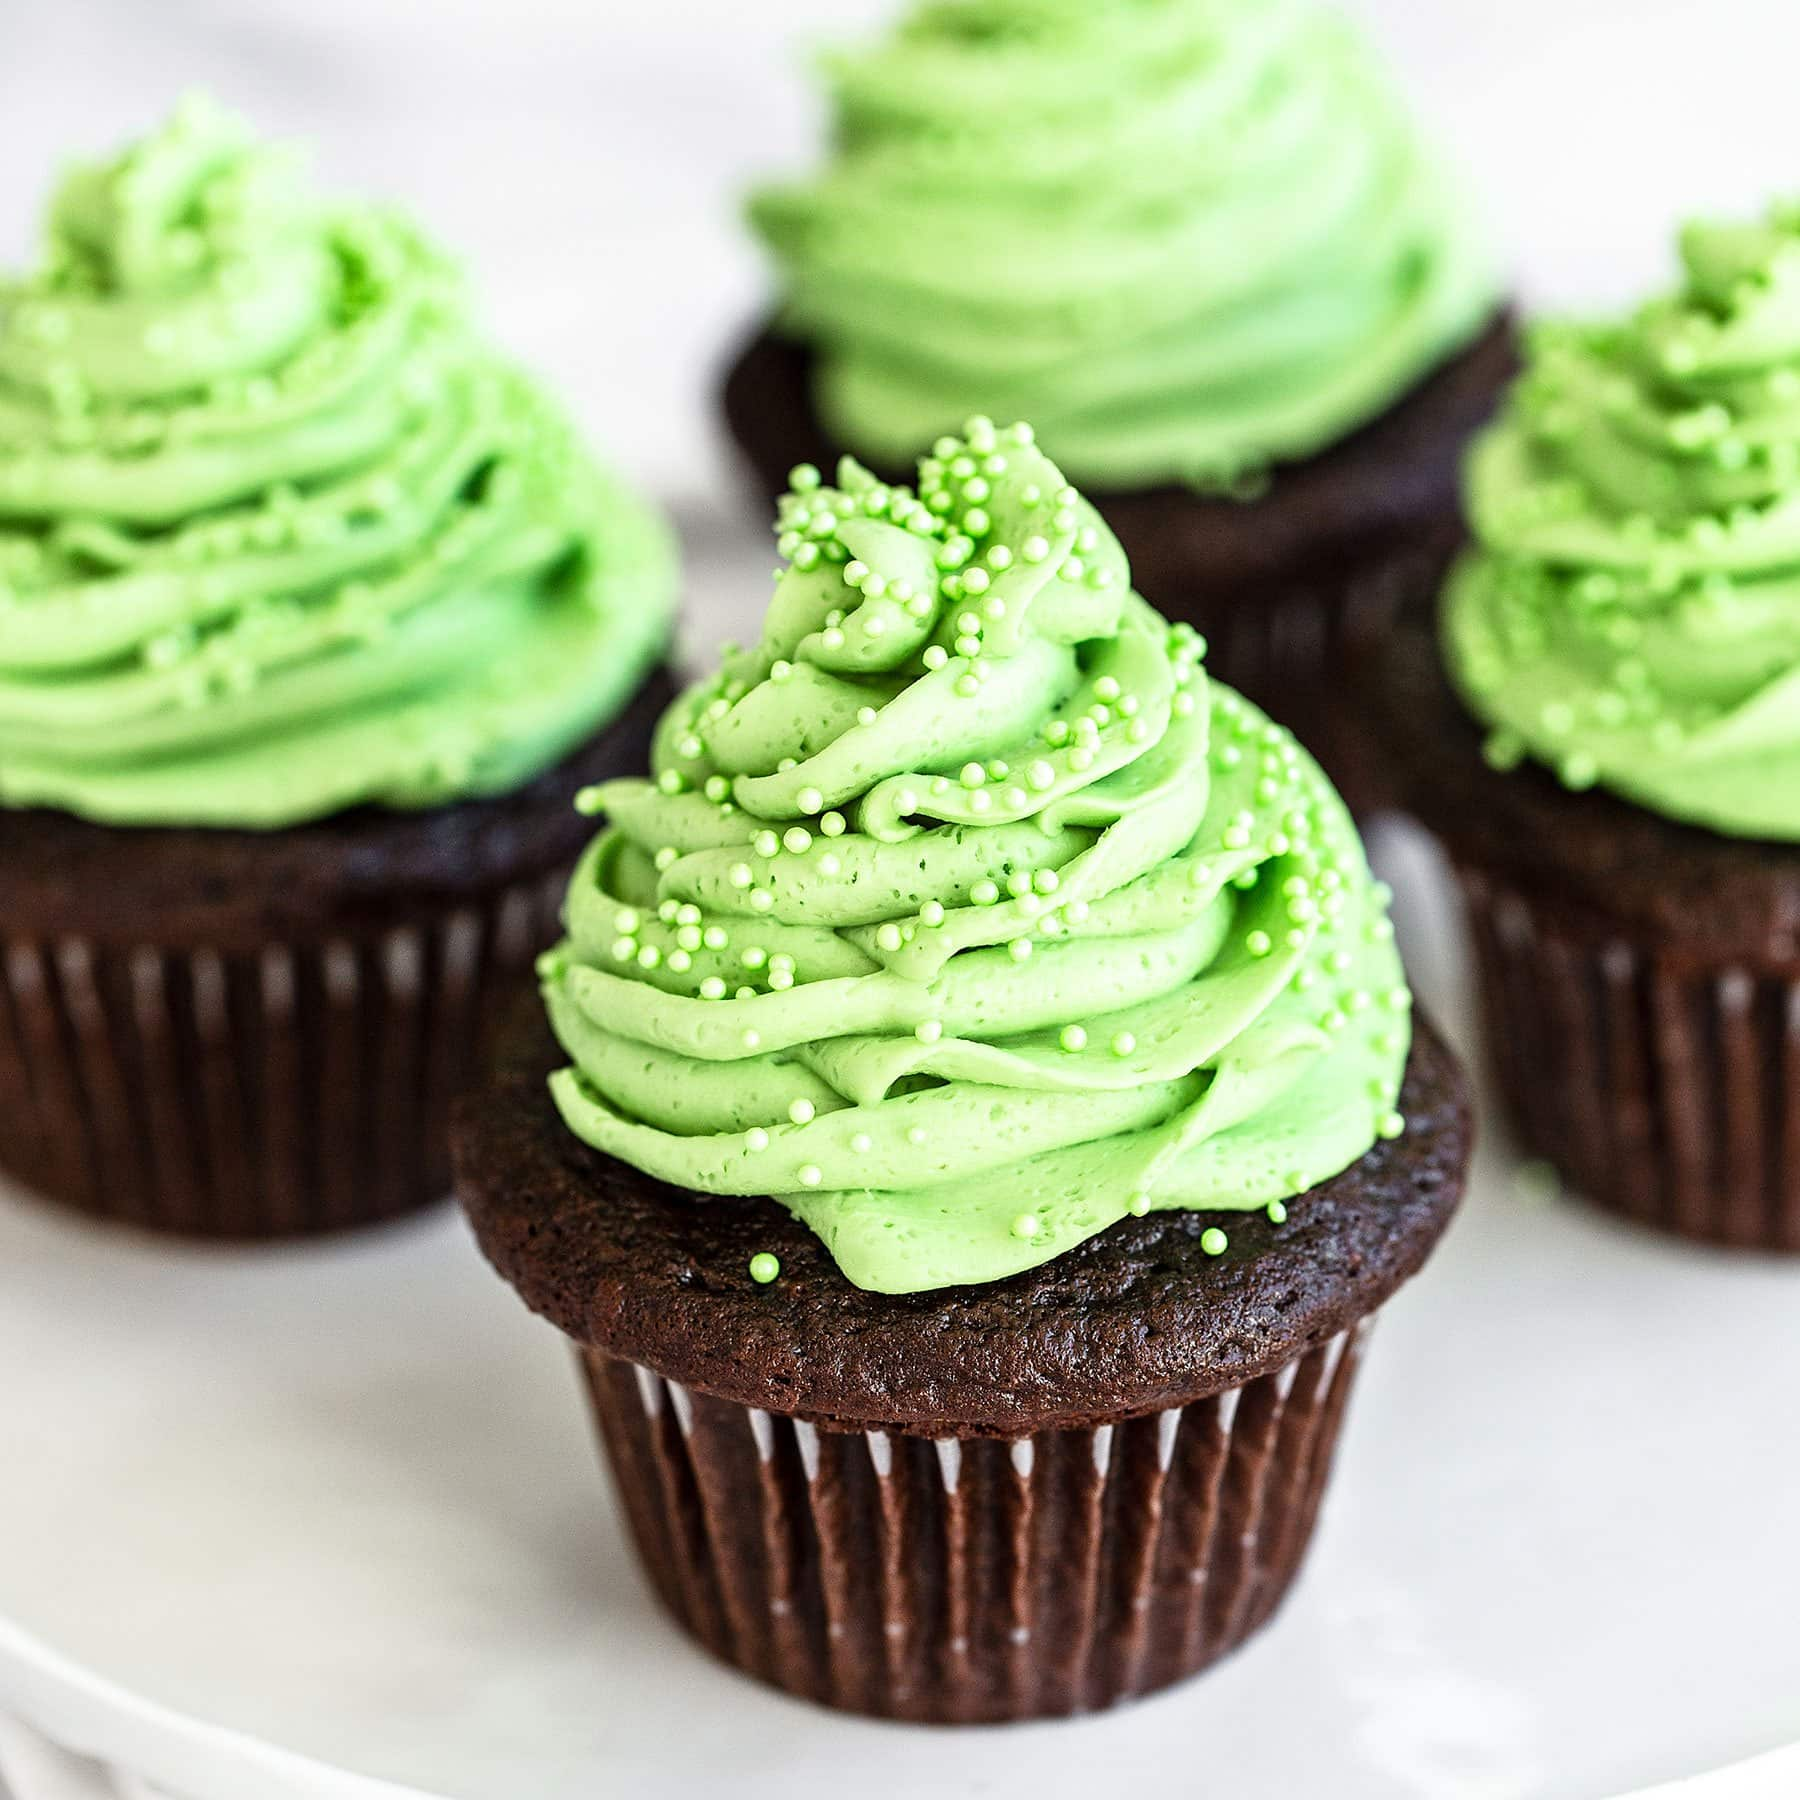 Plate of chocolate mint cupcakes